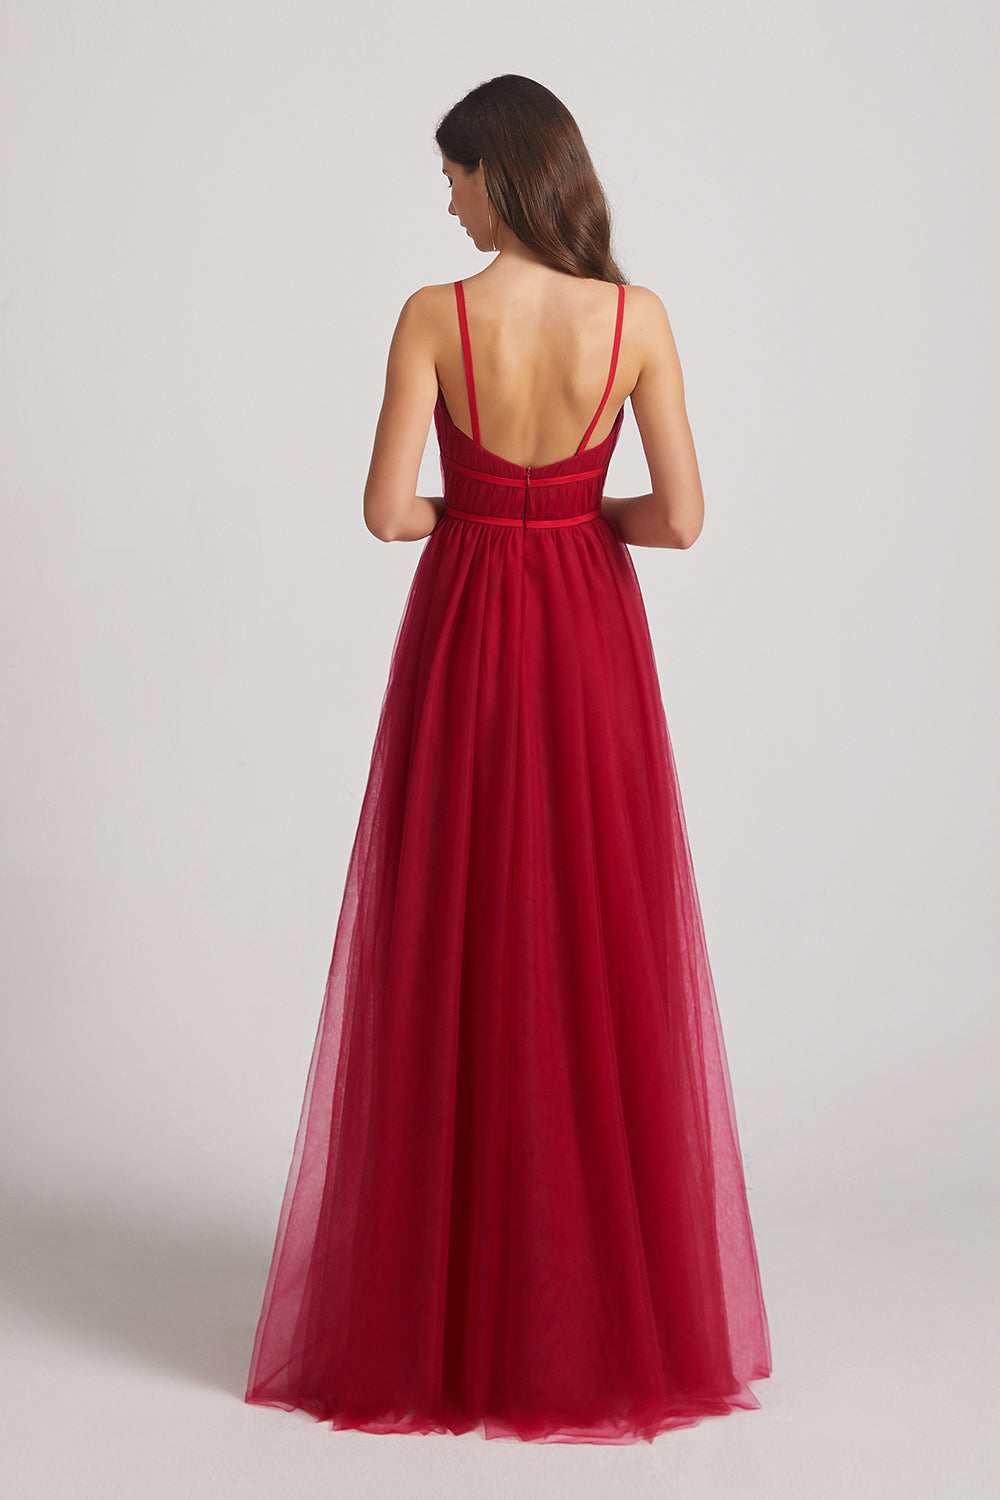 backless prom dresses